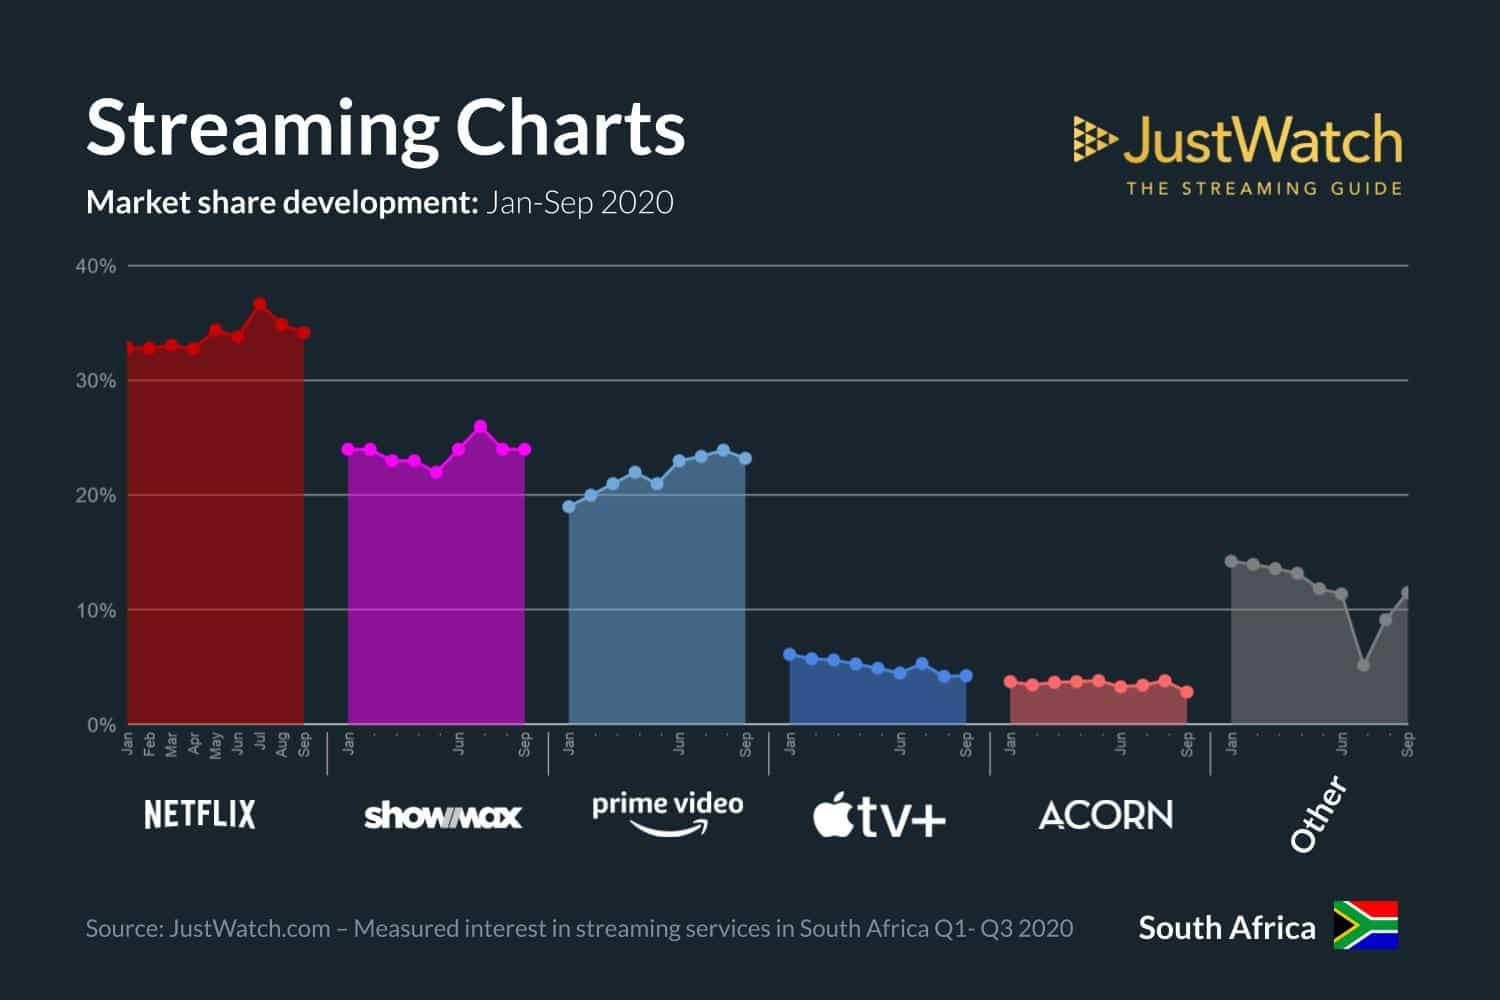 Streaming Charts in Q3 2020